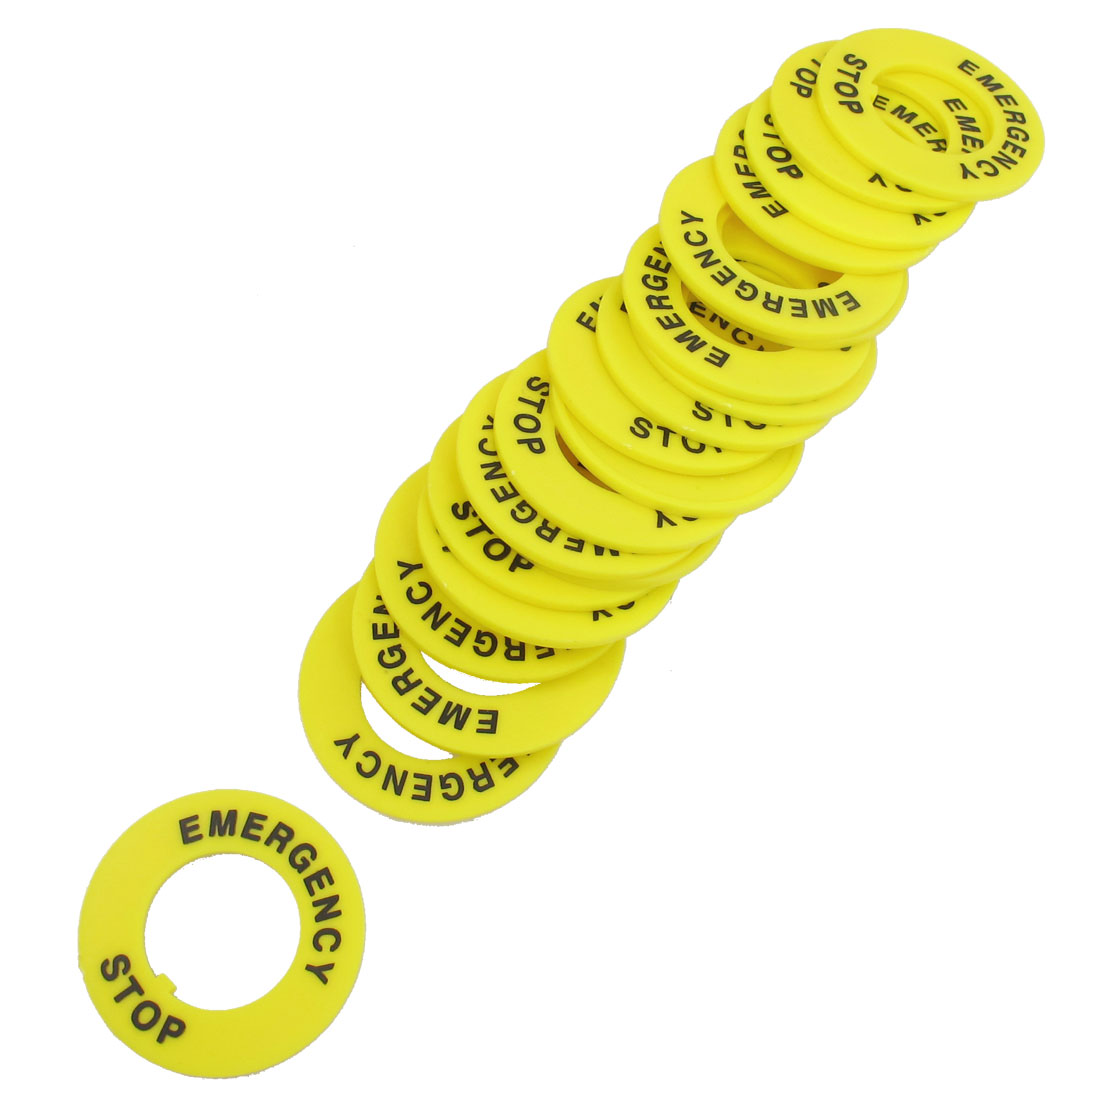 20 Pcs Yellow 22mm Inner Diameter Emergency Stop Ring for Push Button Switch